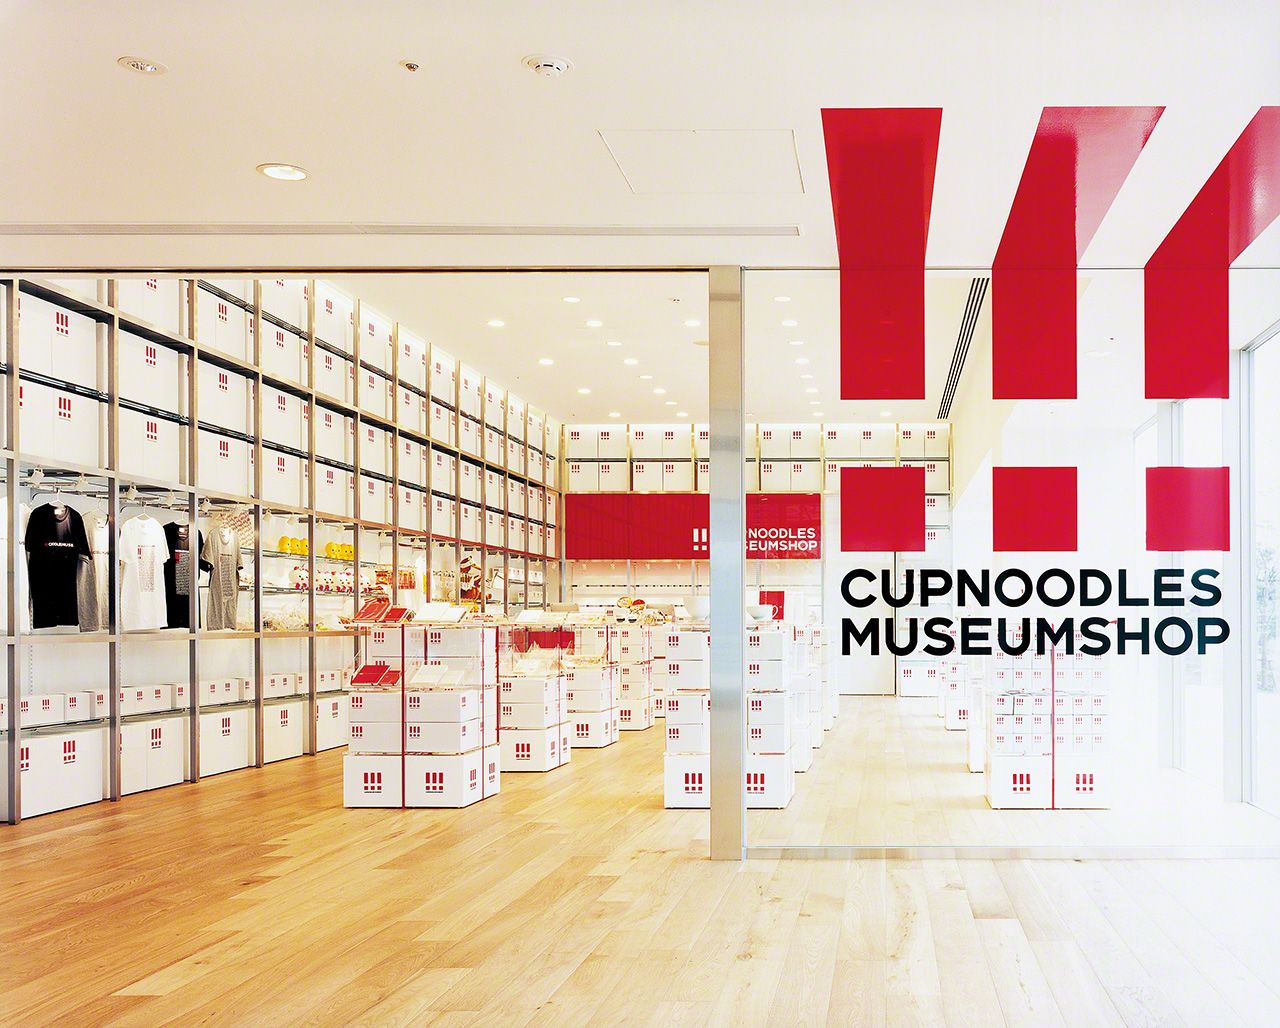 The museum shop at the Cup Noodles Museum. Satō also designed many of the goods sold there.